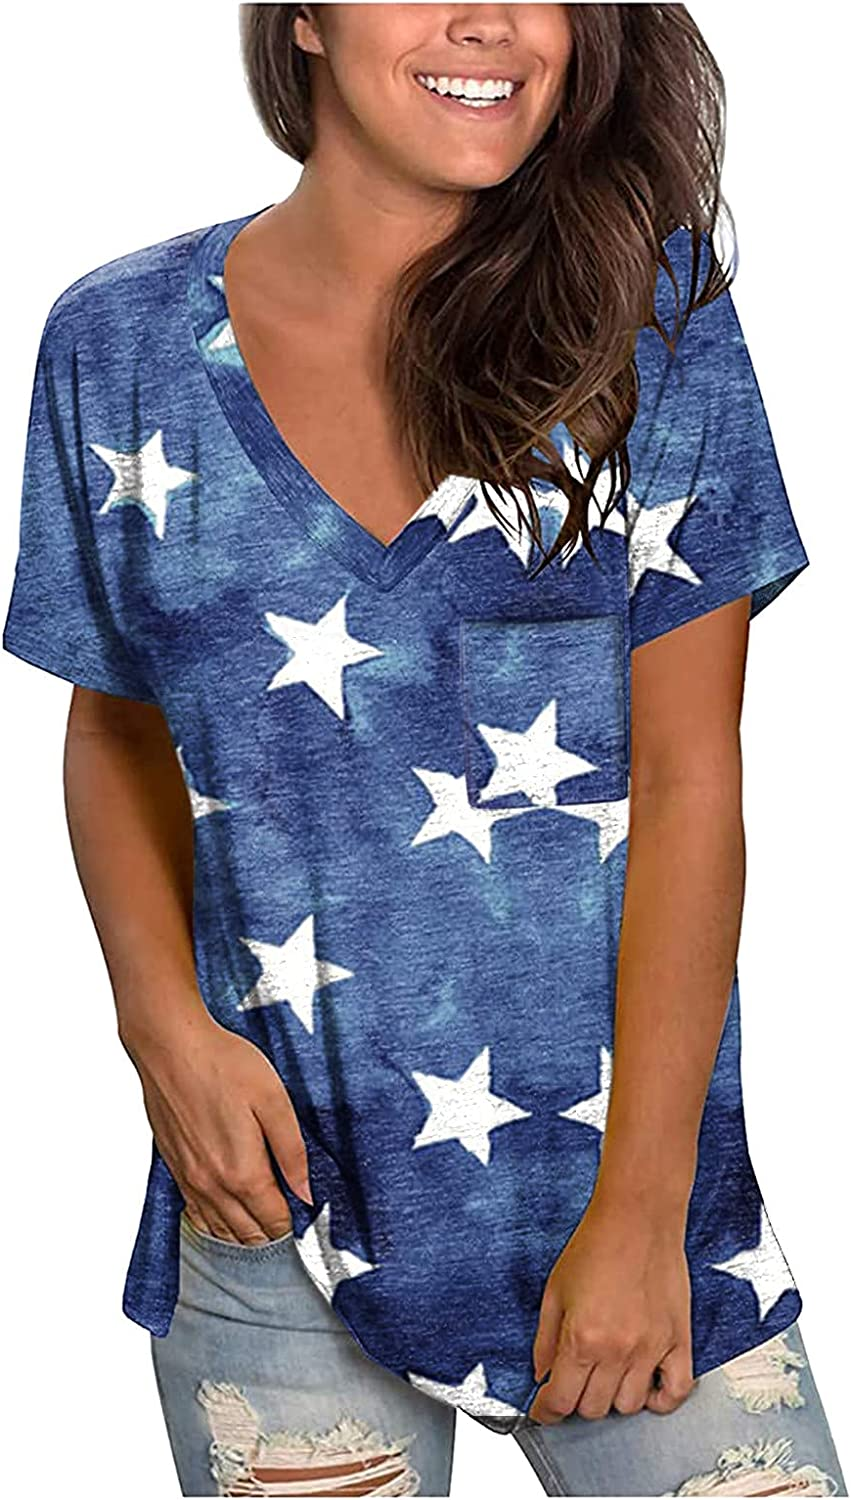 ORT Pocket Short Sleeve Shirts for Womens, Fashion Tie-Dye T-Shirts Casual Loose Fit Tops Short Sleeve V-Neck Top Blouses